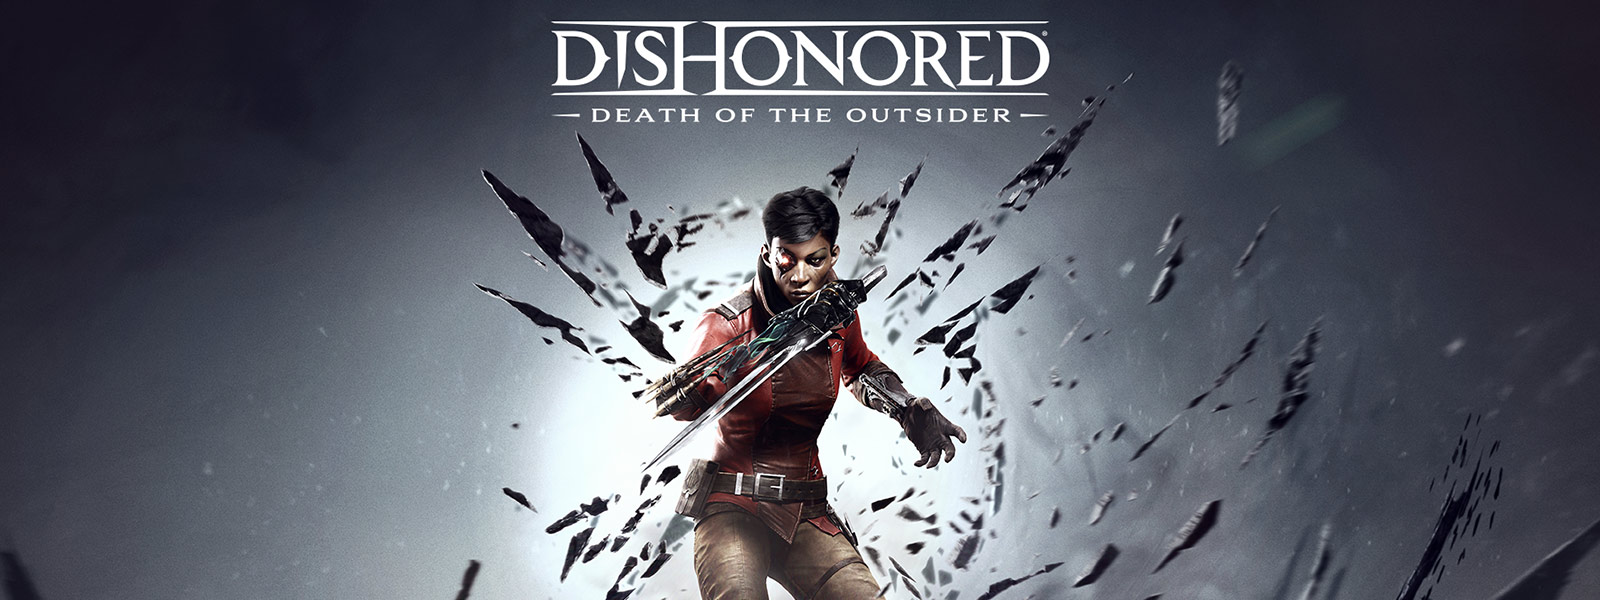 Dishonored 2 What's new